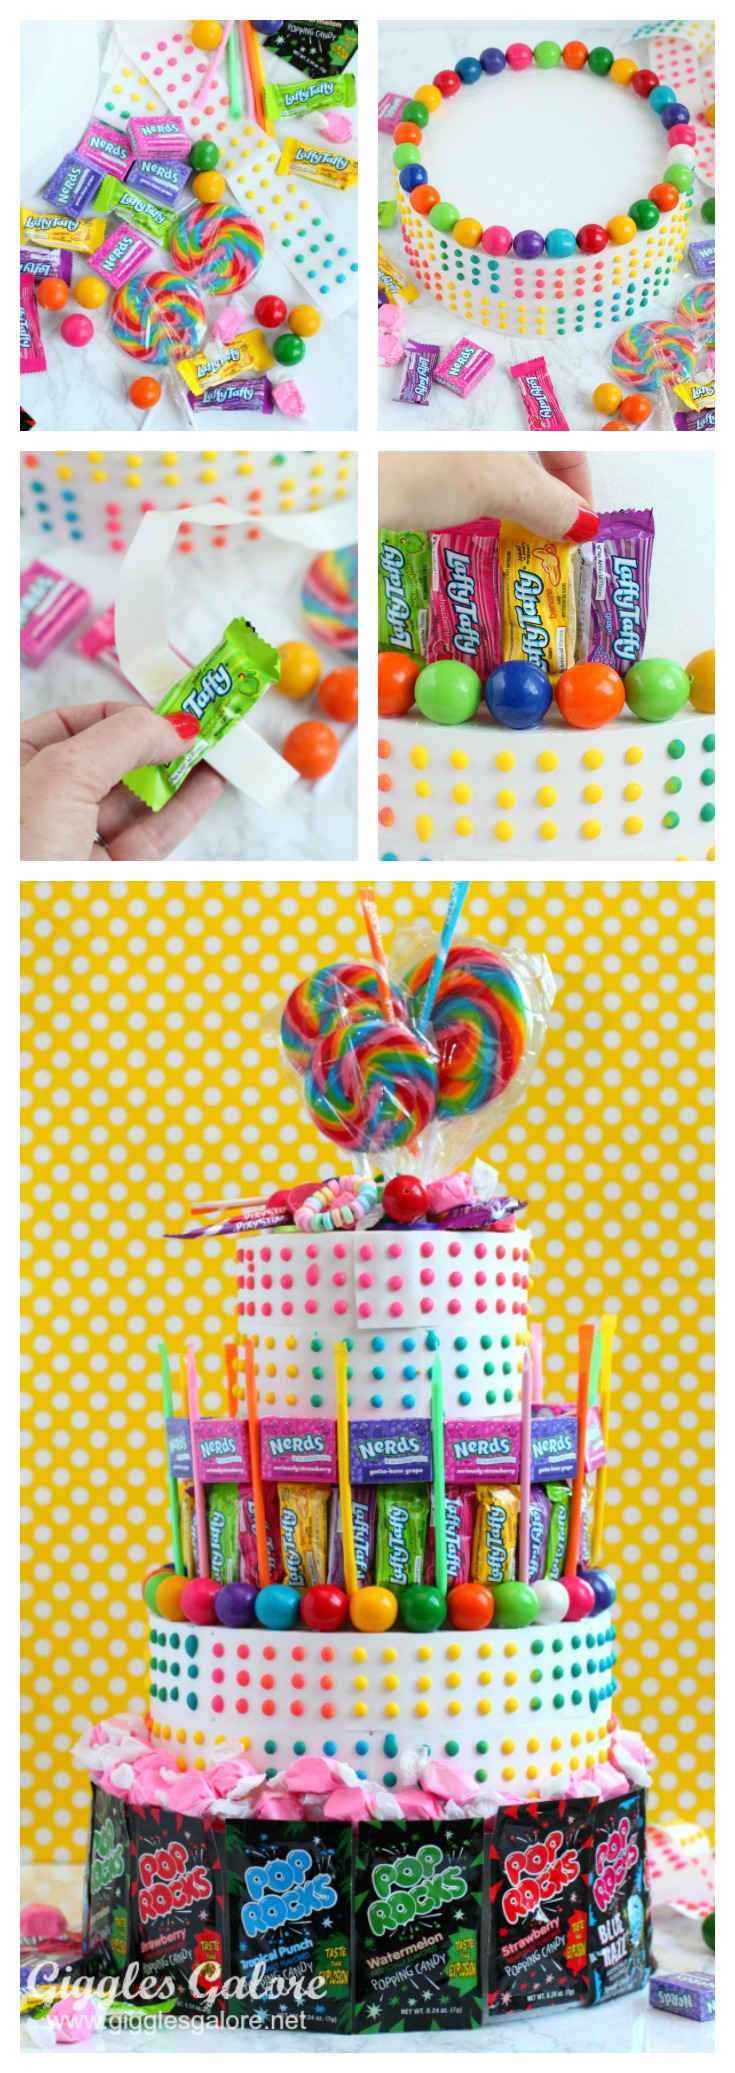 Pleasant How To Make A No Bake Candy Birthday Cake Funny Birthday Cards Online Bapapcheapnameinfo